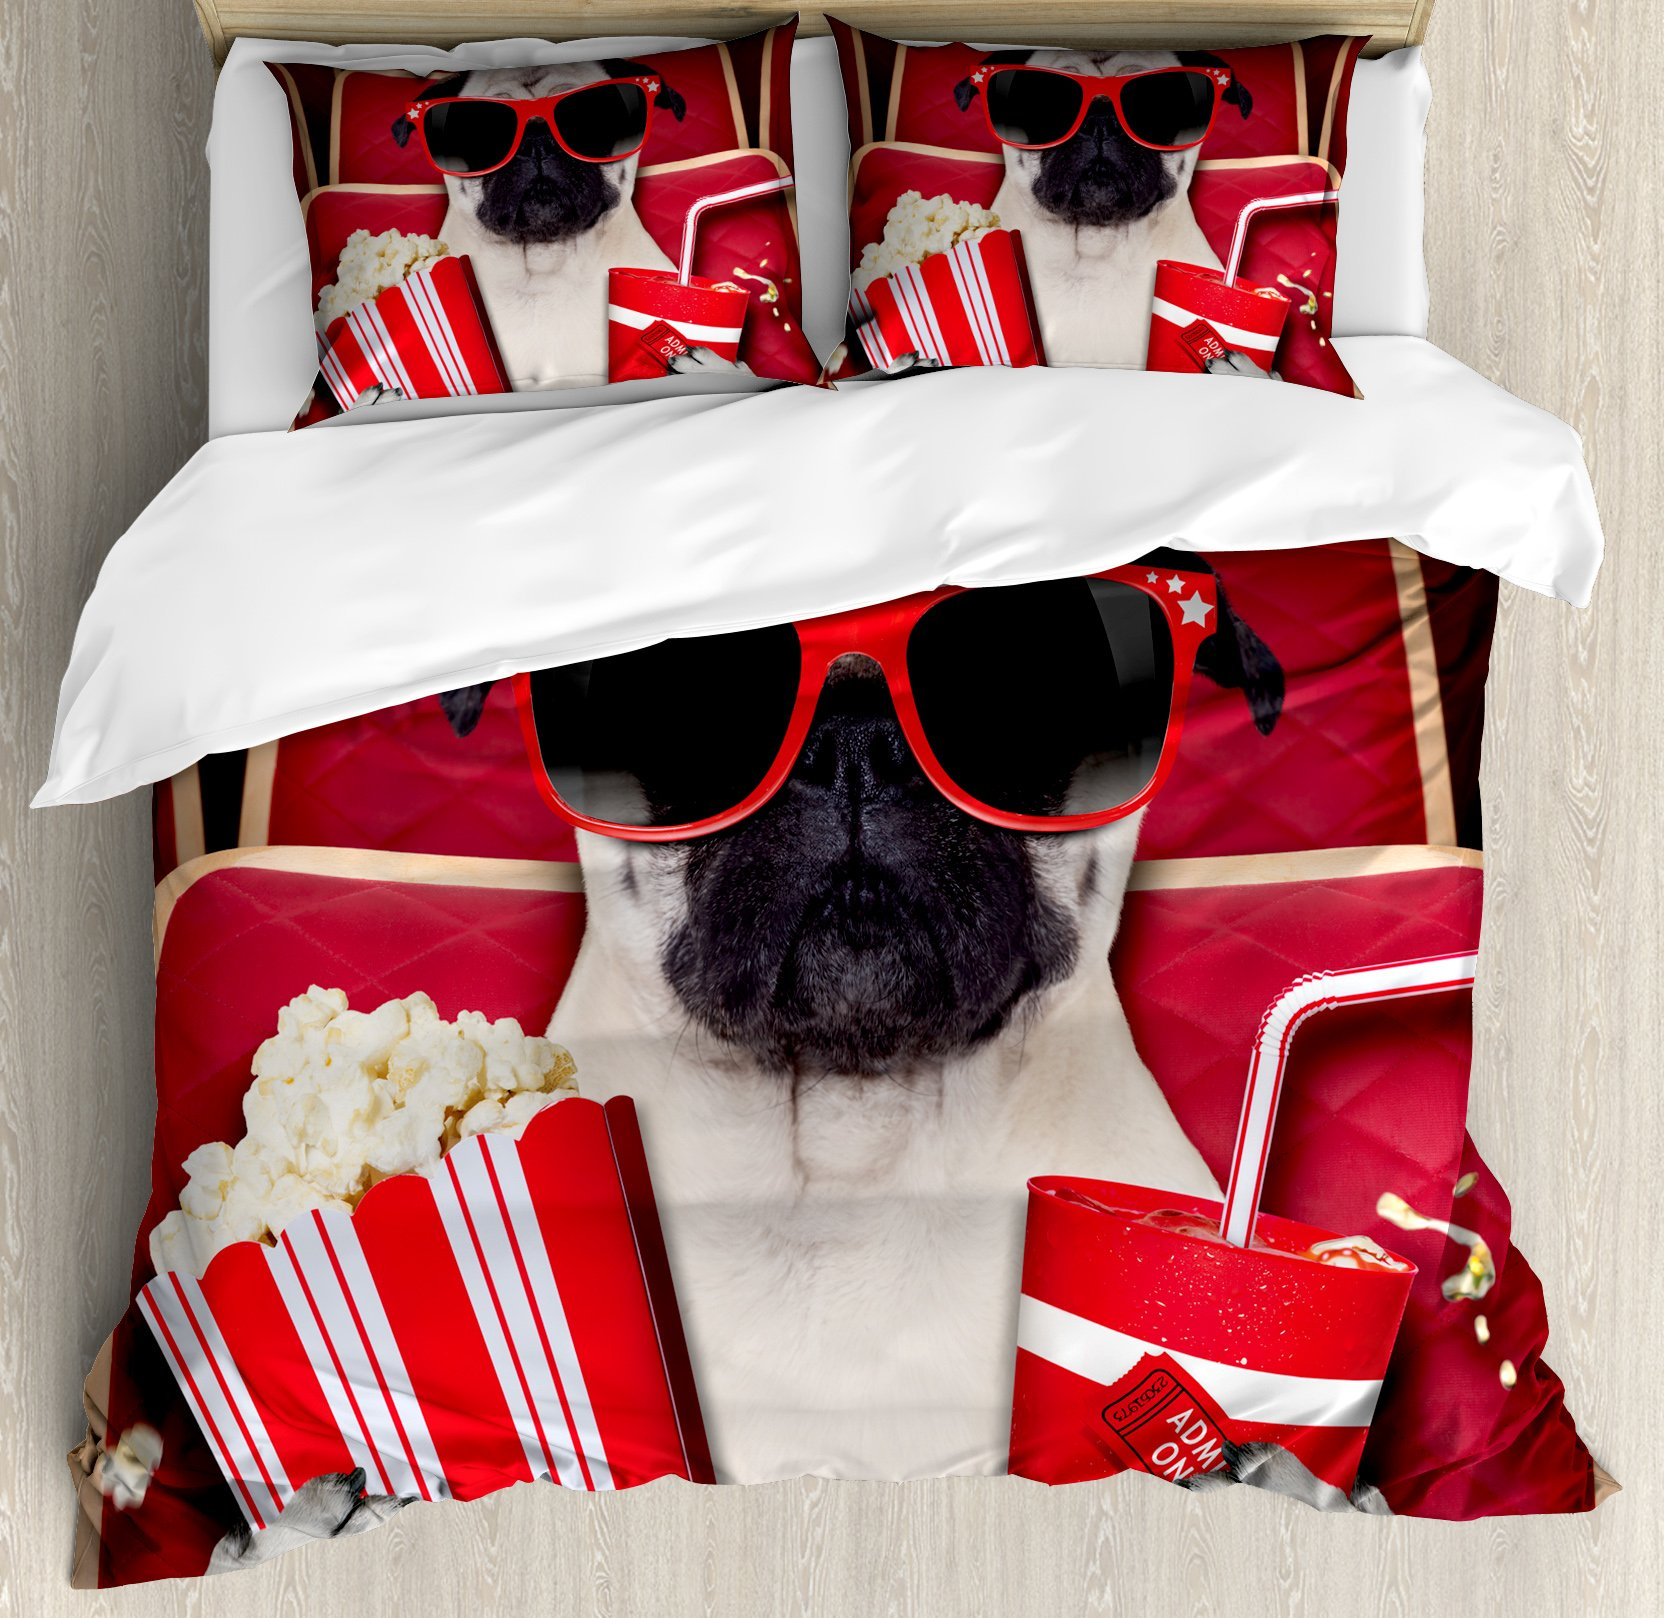 Ambesonne Pug Duvet Cover Set Twin Size, Funny Dog Watching Movie Popcorn Soft Drink and Glasses Animal Photograph Print, Decorative 2 Piece Bedding Set with 1 Pillow Sham, Red Cream Ruby